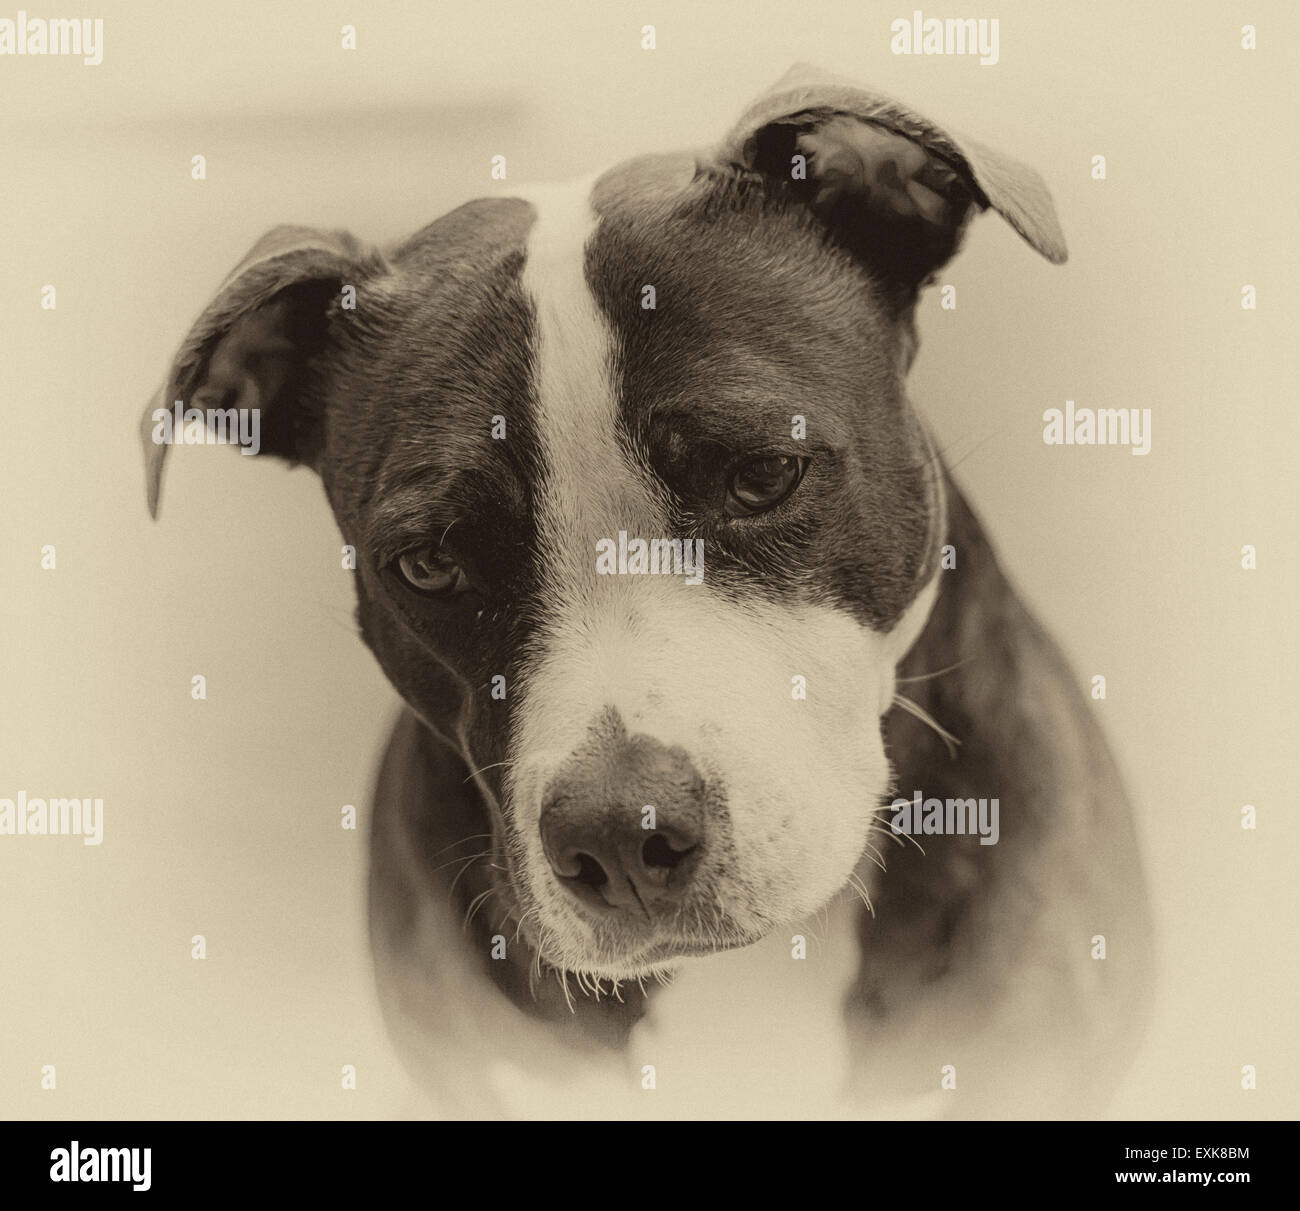 Black & White photograph of pet dog - Stock Image